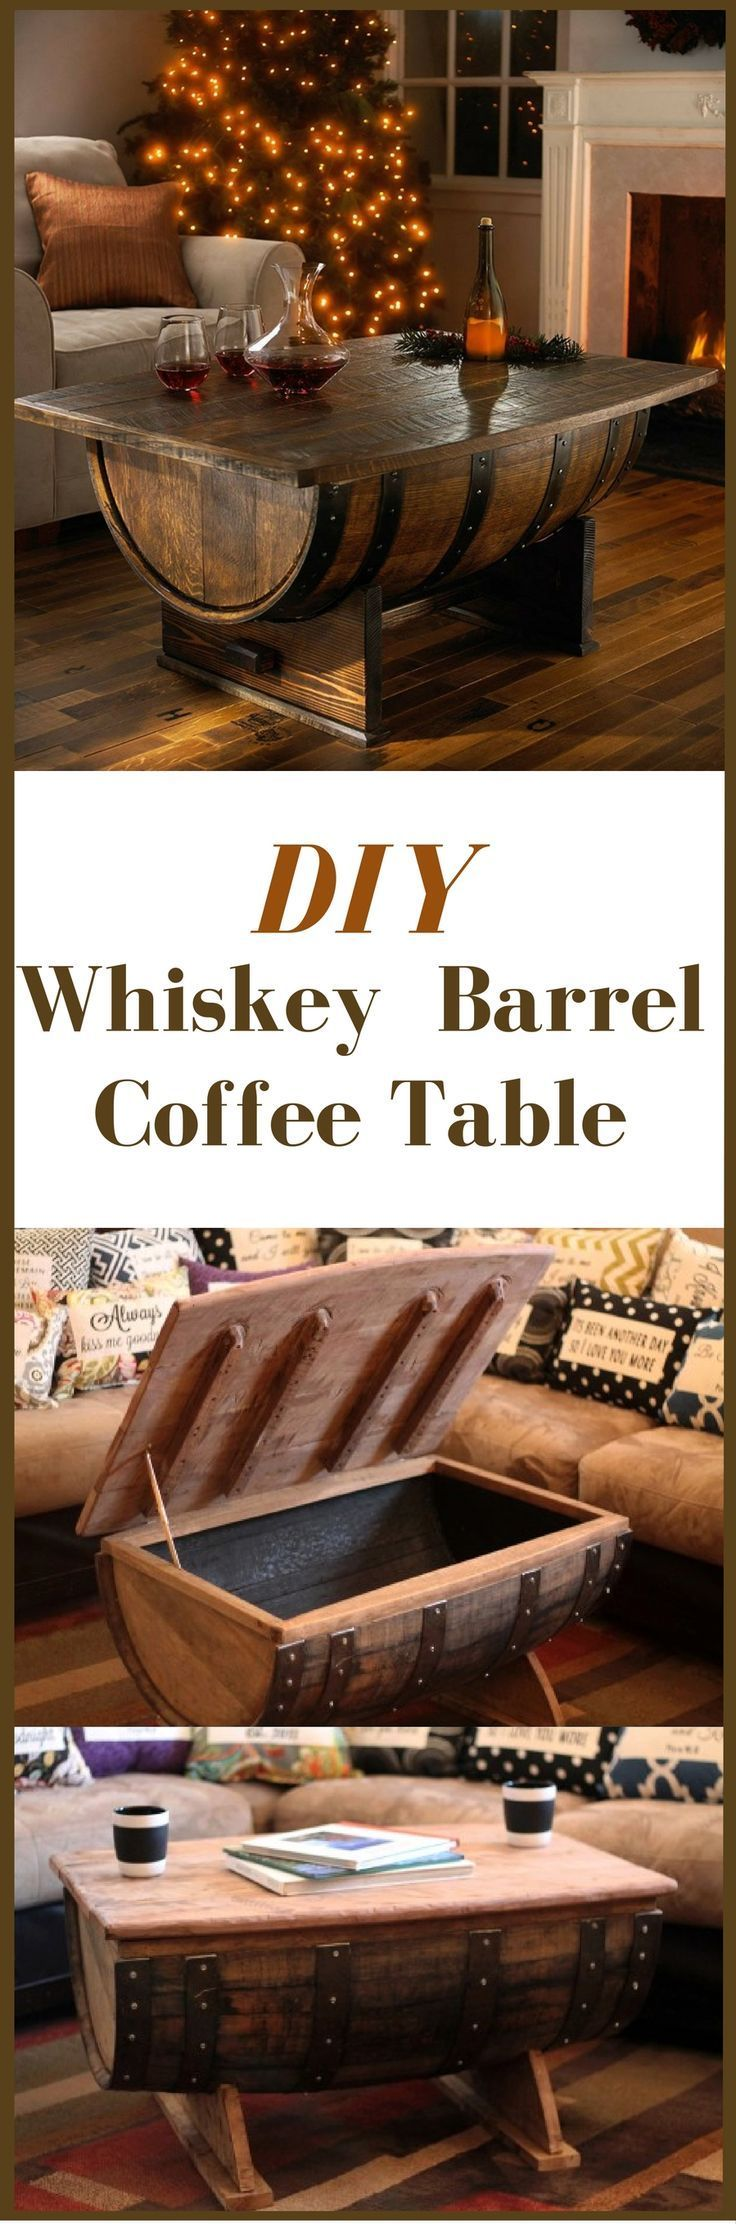 nice cool How To Build A Whiskey Barrel Coffee Table vid.staged.com/67Ws... by www.be... by http://www.best99-home-decorpics.club/asian-home-decor/cool-how-to-build-a-whiskey-barrel-coffee-table-vid-staged-com67ws-by-www-be/